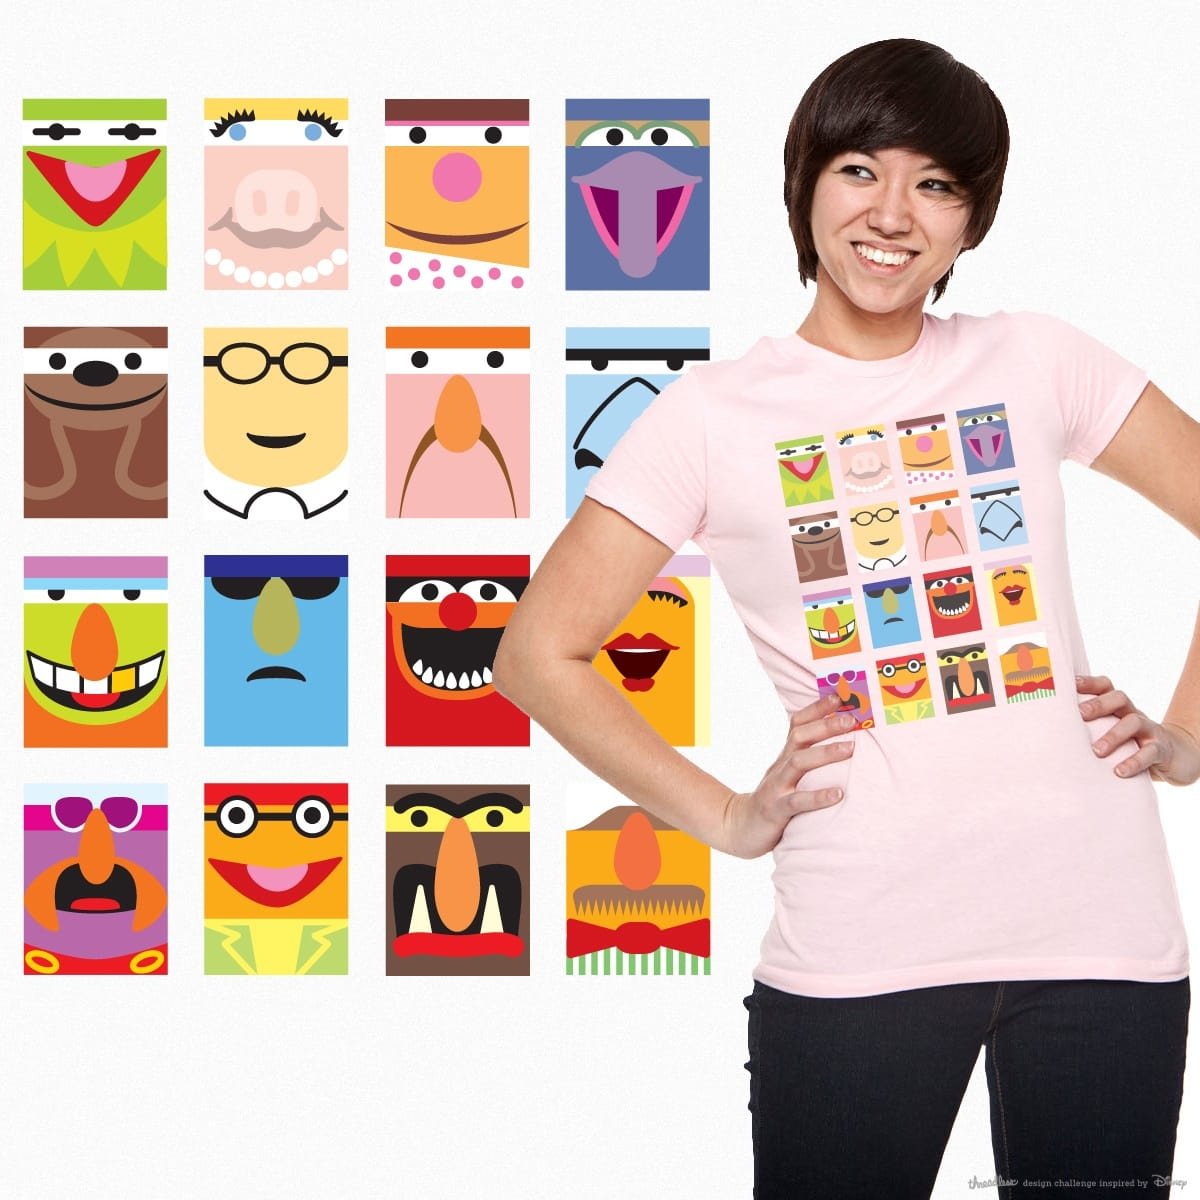 Muppets Squared by jomapa on Threadless